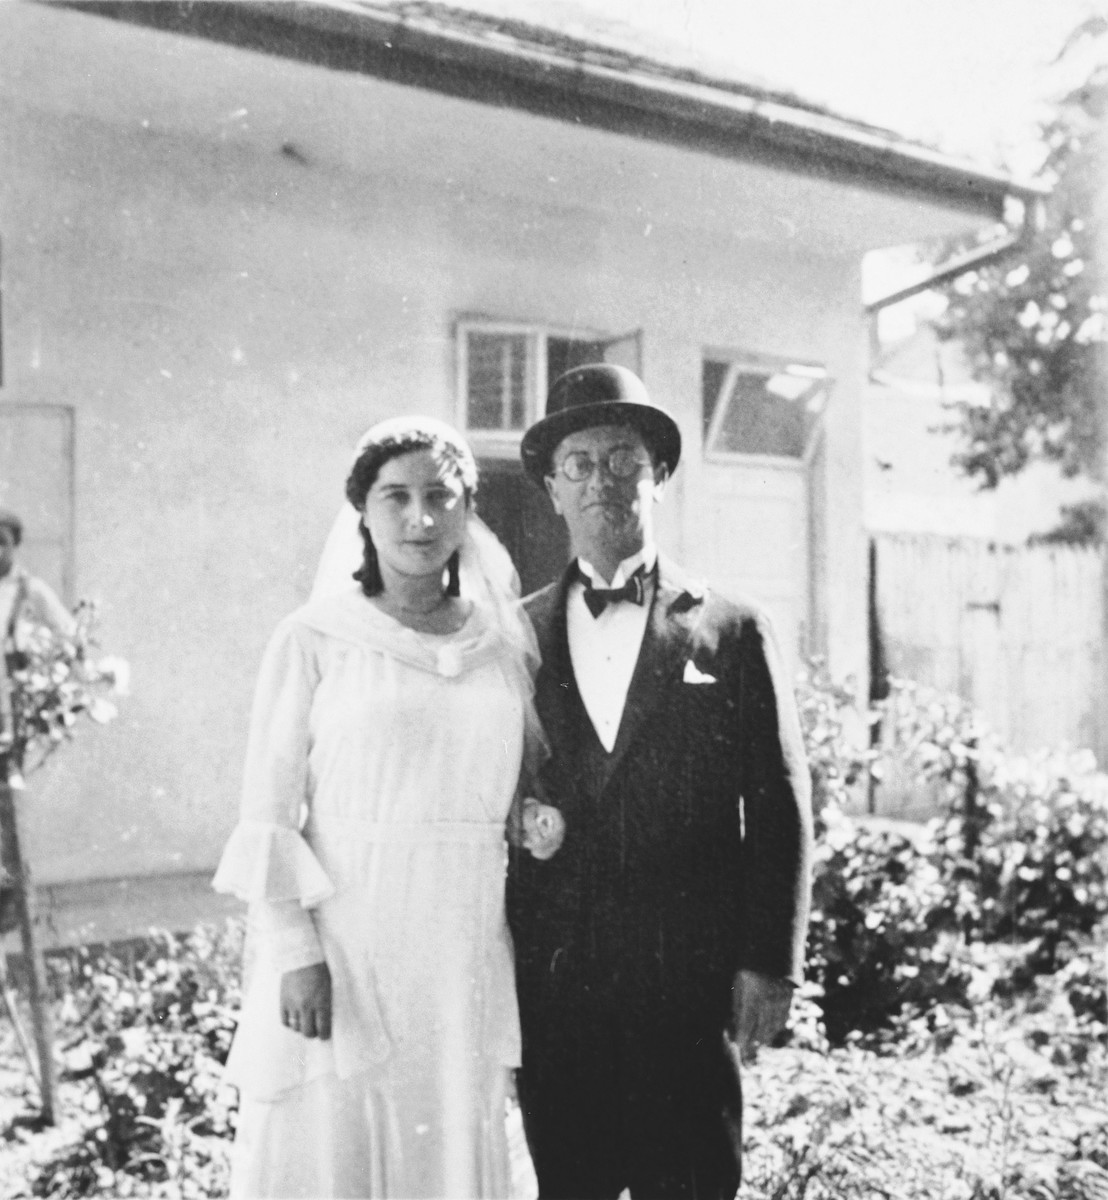 Wedding portrait of Jozsa and Zoltan Taubner.